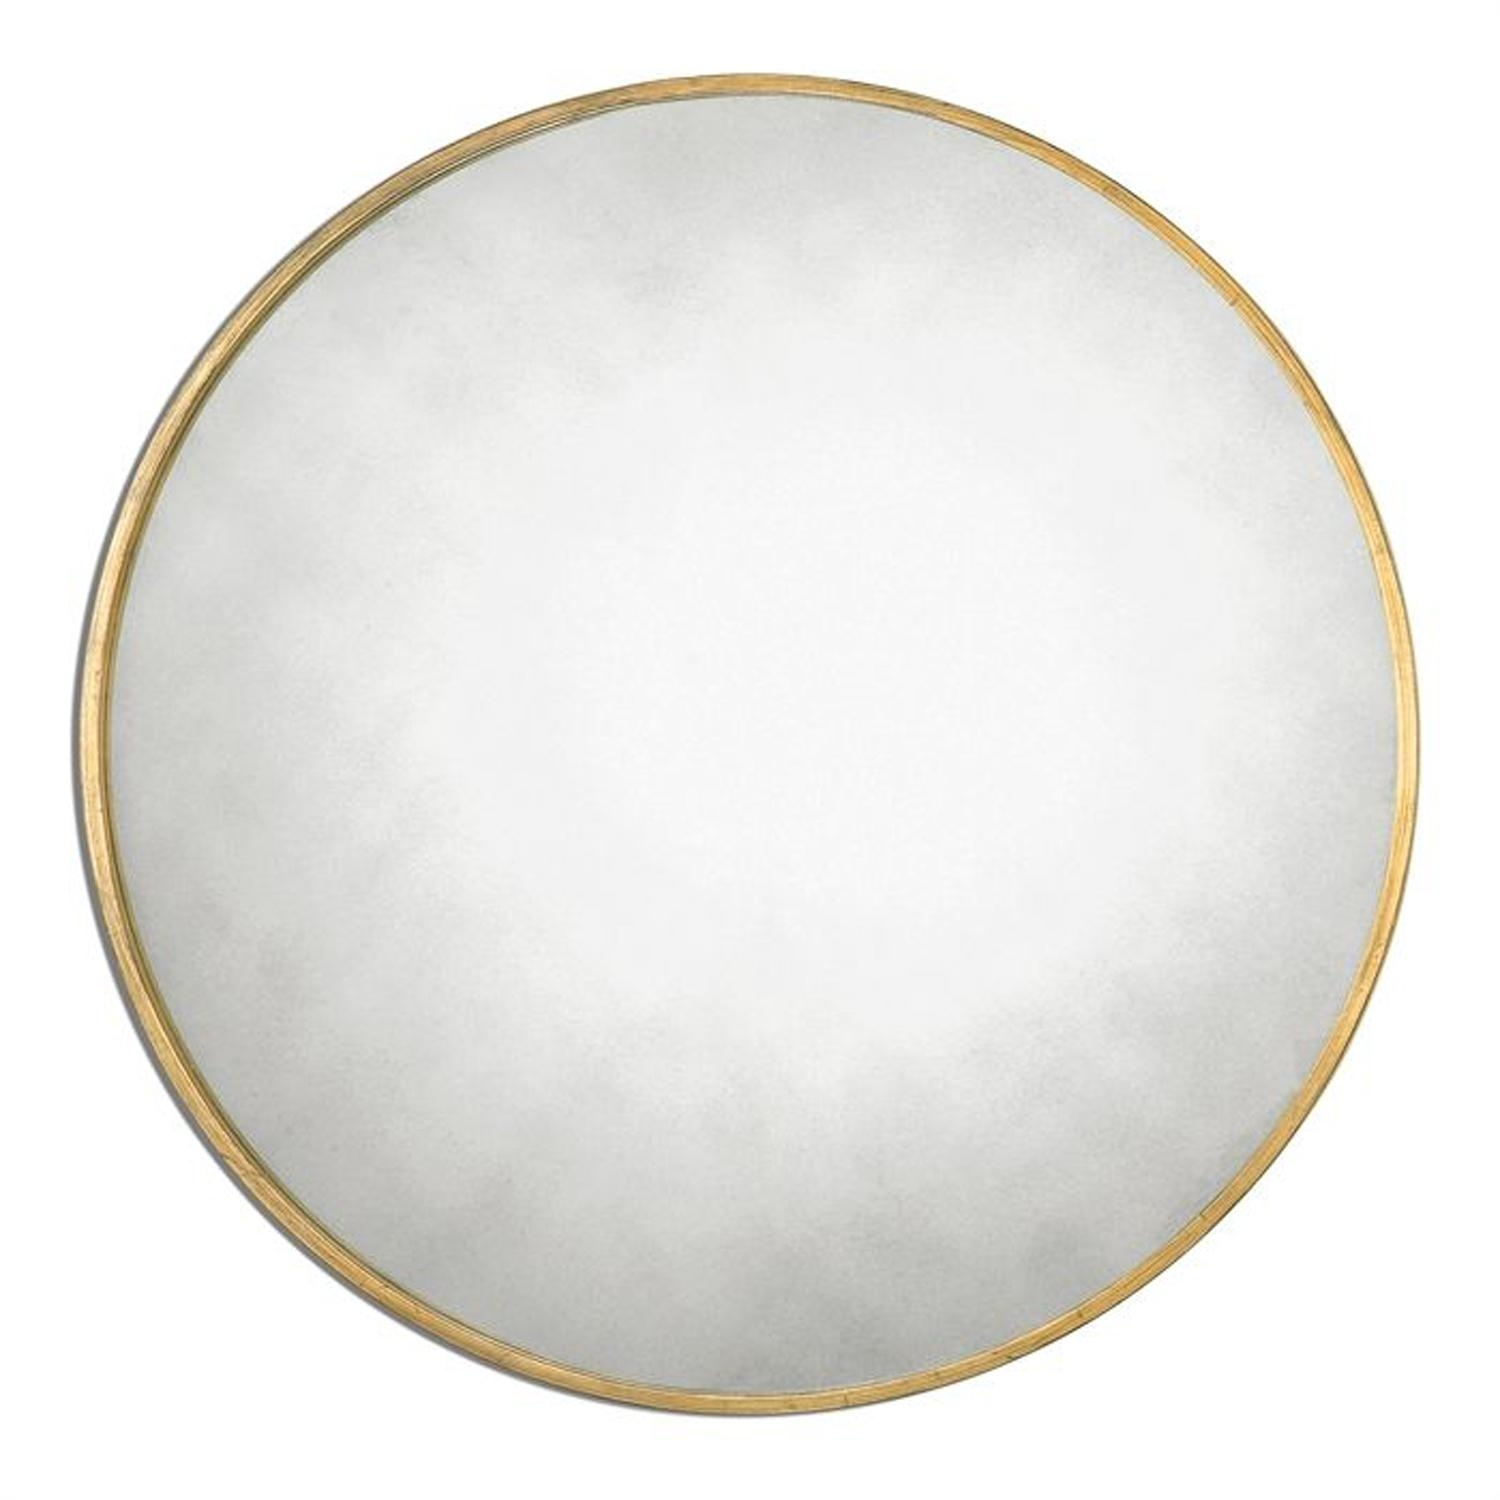 Junius Round Gold Round Mirror Uttermost Wall Mirror Mirrors Home Pertaining To Gold Wall Mirrors (Image 11 of 20)